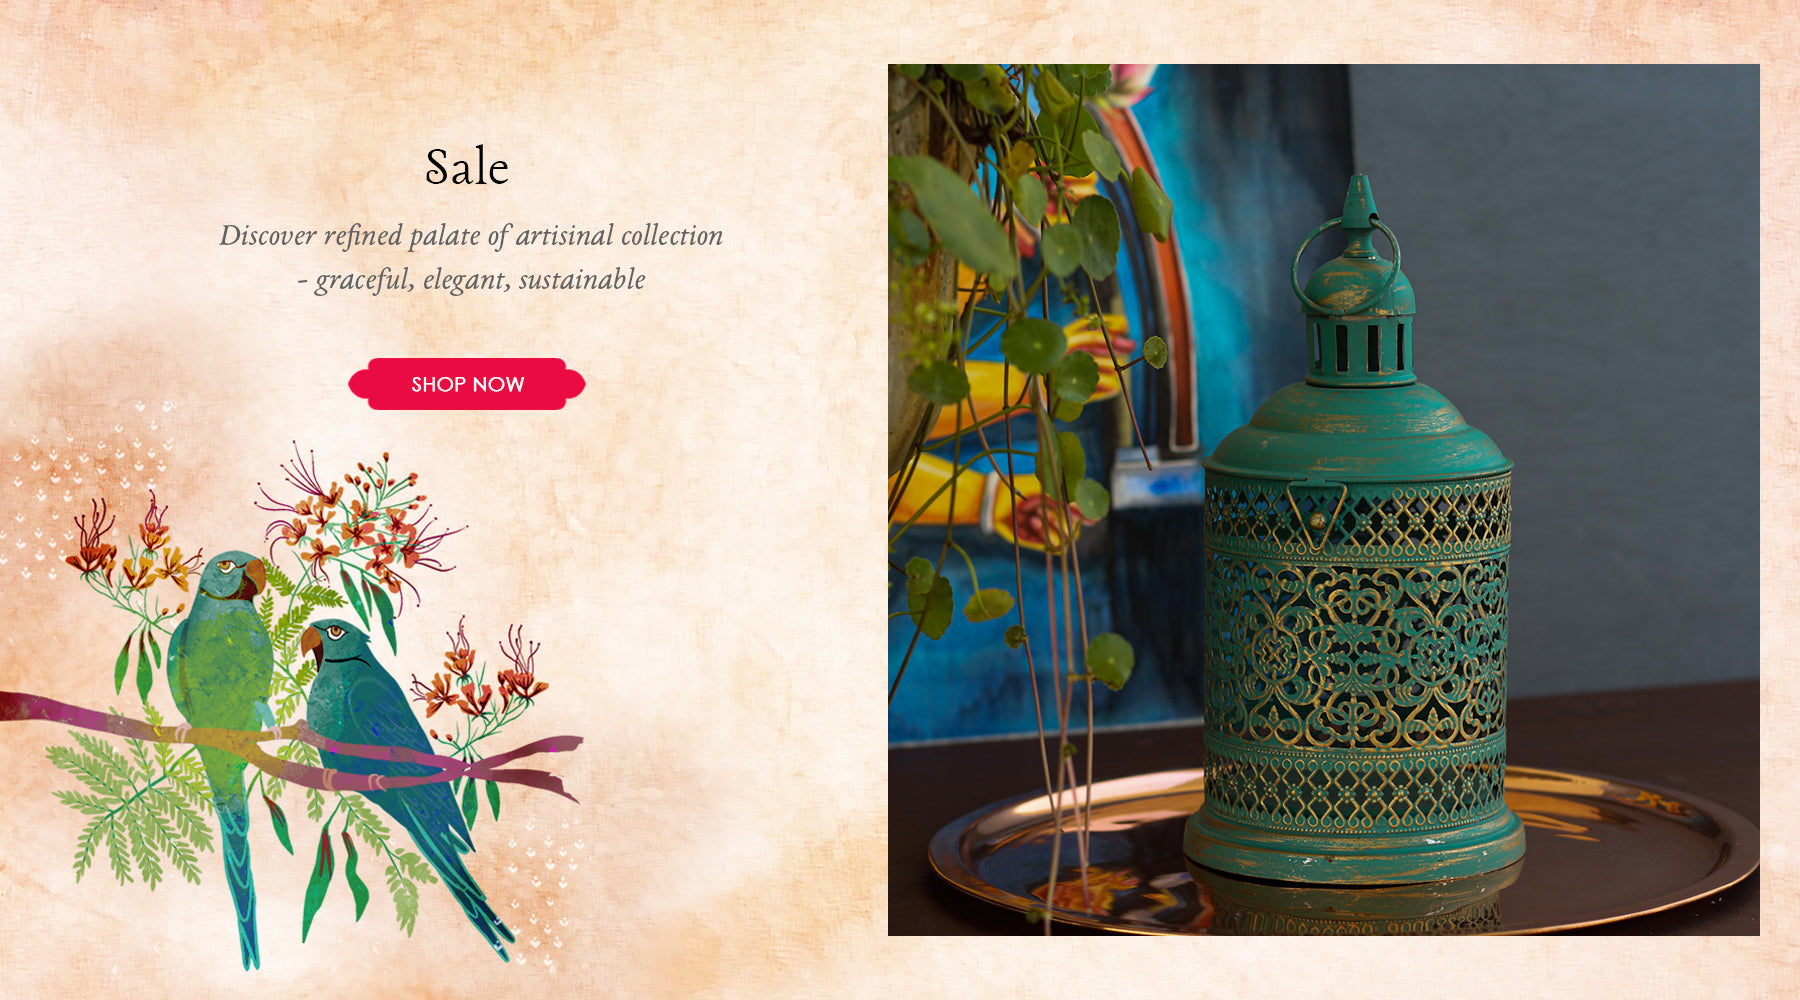 Sale of Luxury Home Décor Products